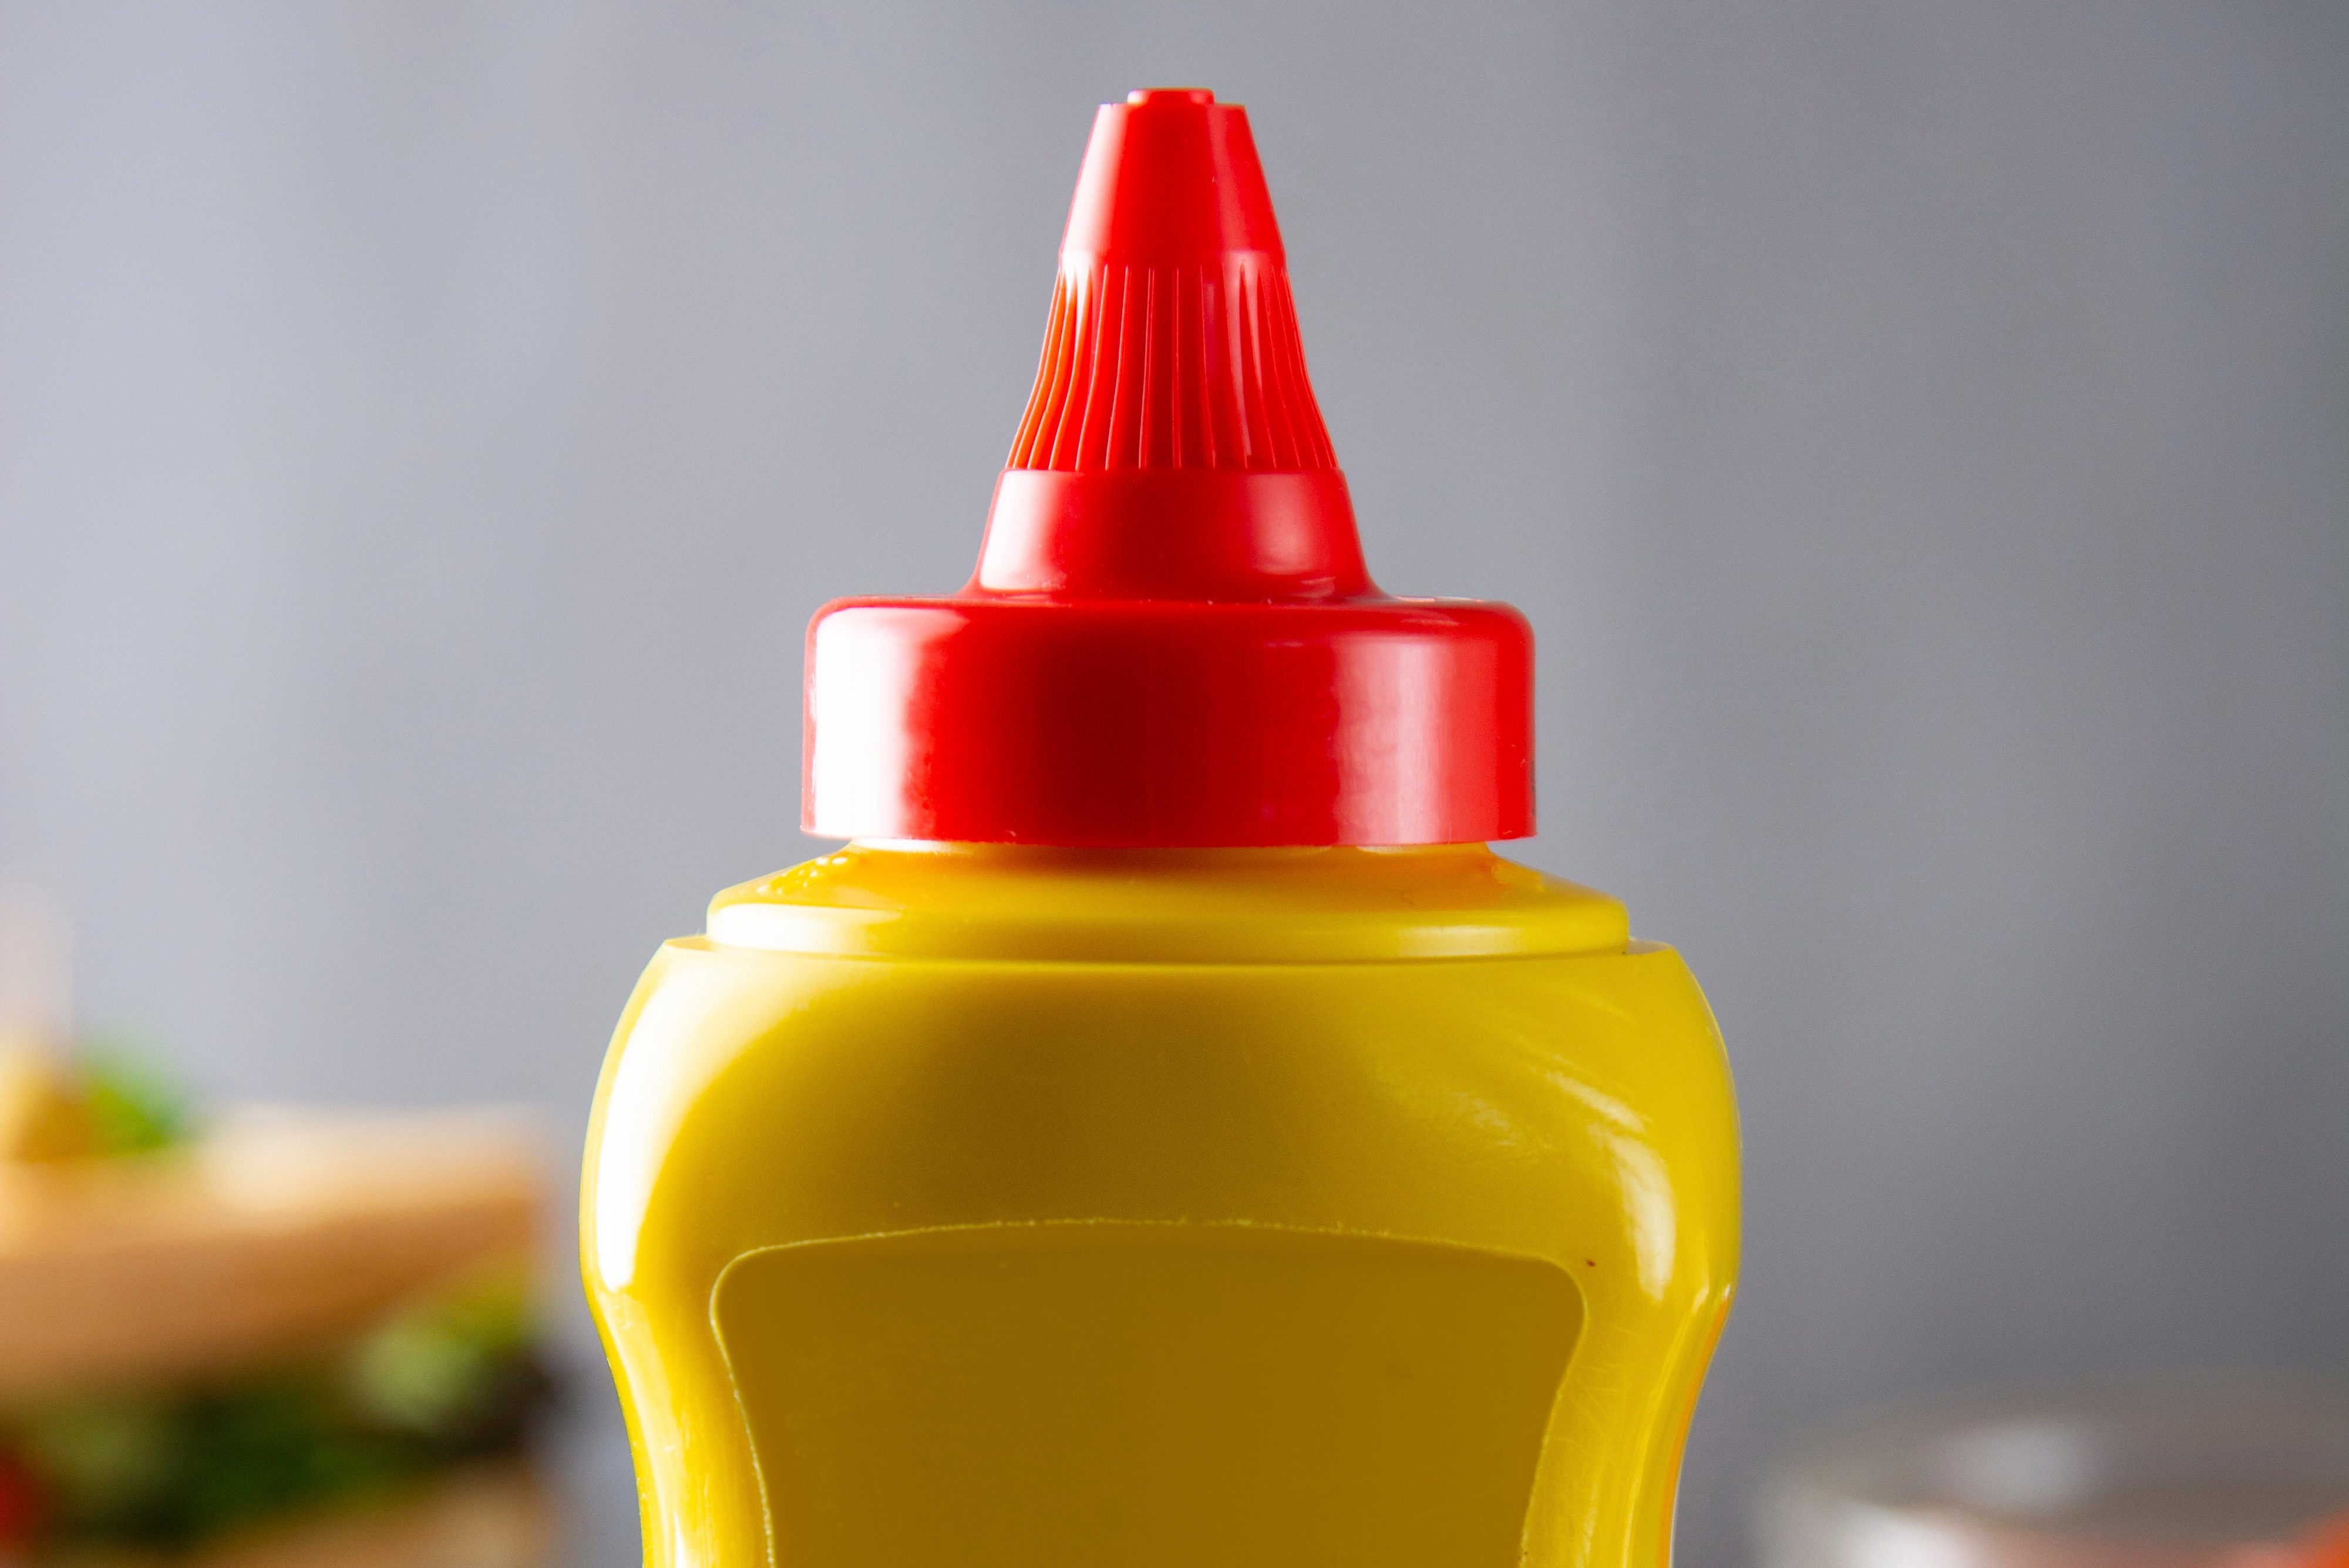 Yellow mustard squeeze bottle container with no label. Breakfast sandwich on background. Food product.